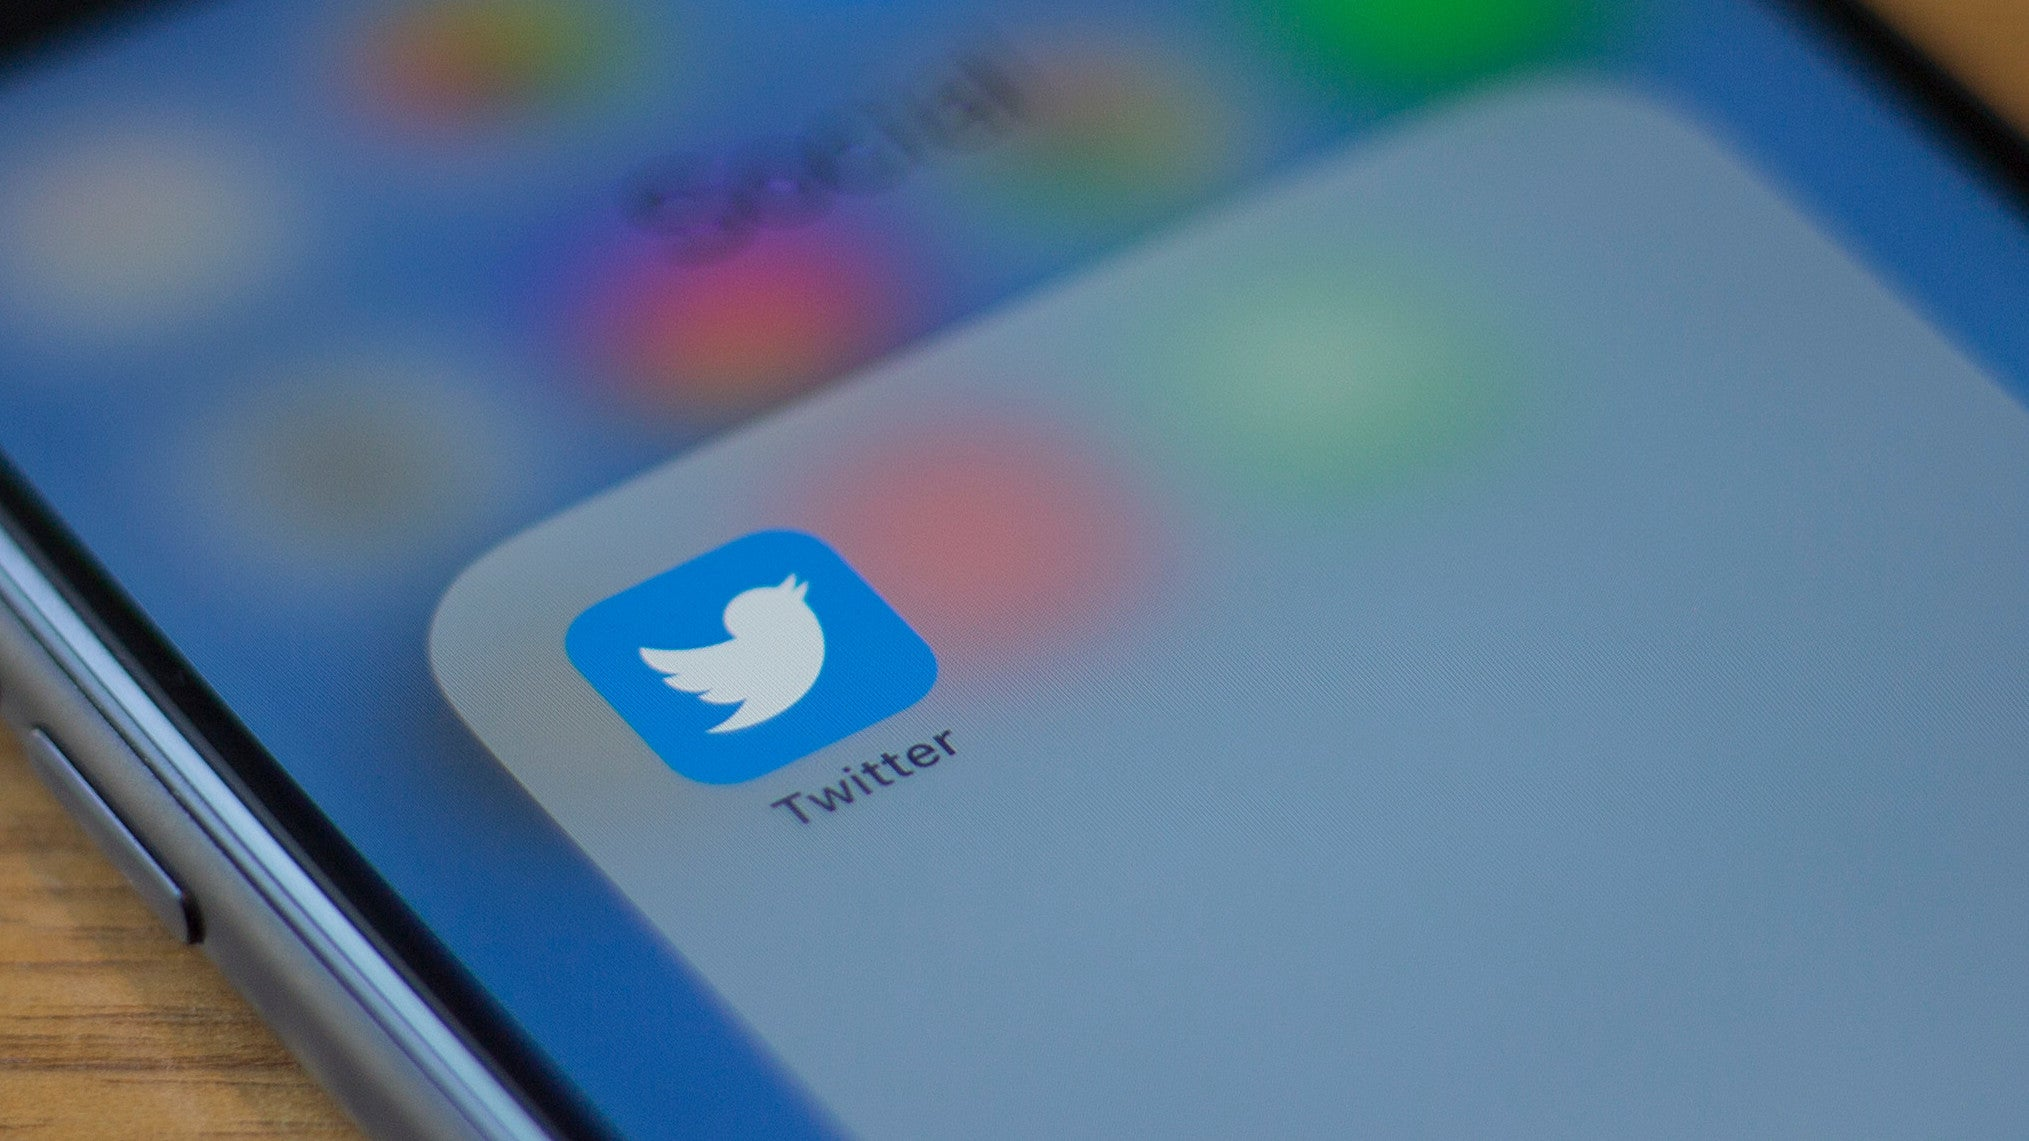 Twitter Wants The Hive Mind To Weigh In On Its Deepfake Policy